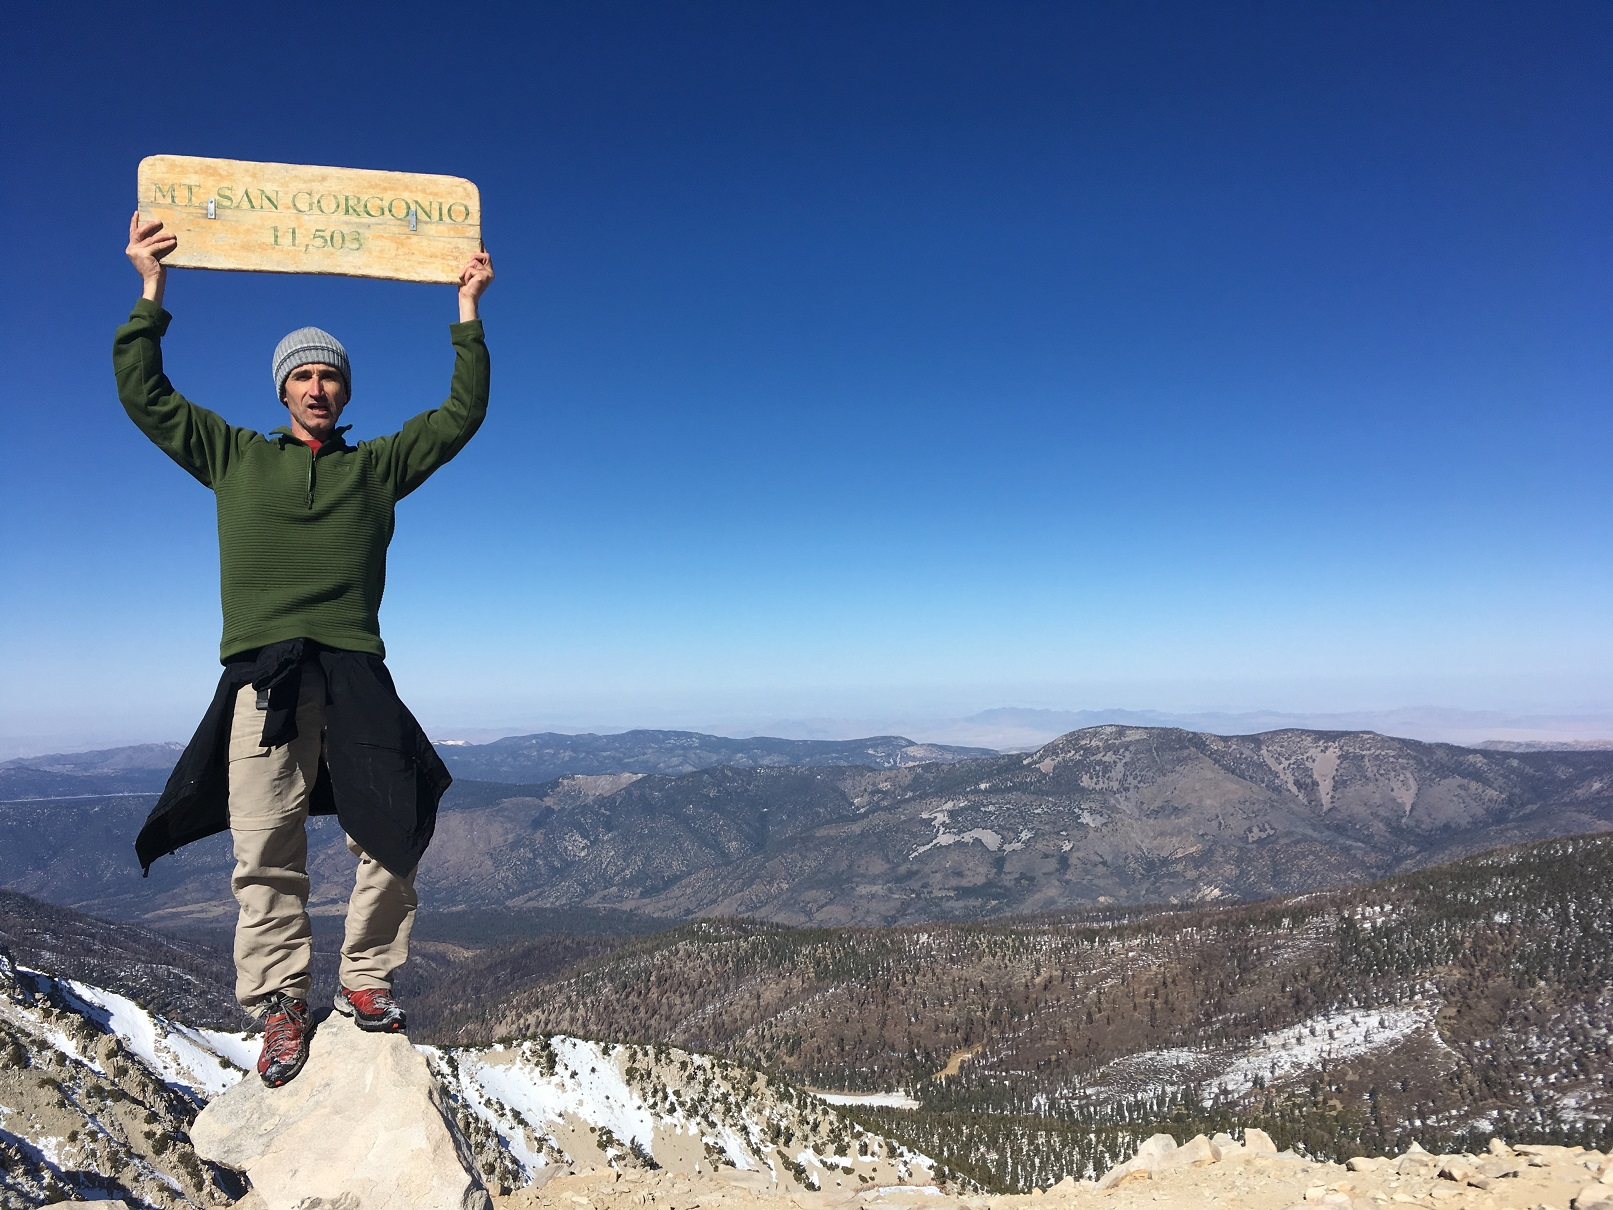 Professor Zorman at the top of Mt. San Gorgonio, proudly holding up a sign with its elevation: 11,503ft